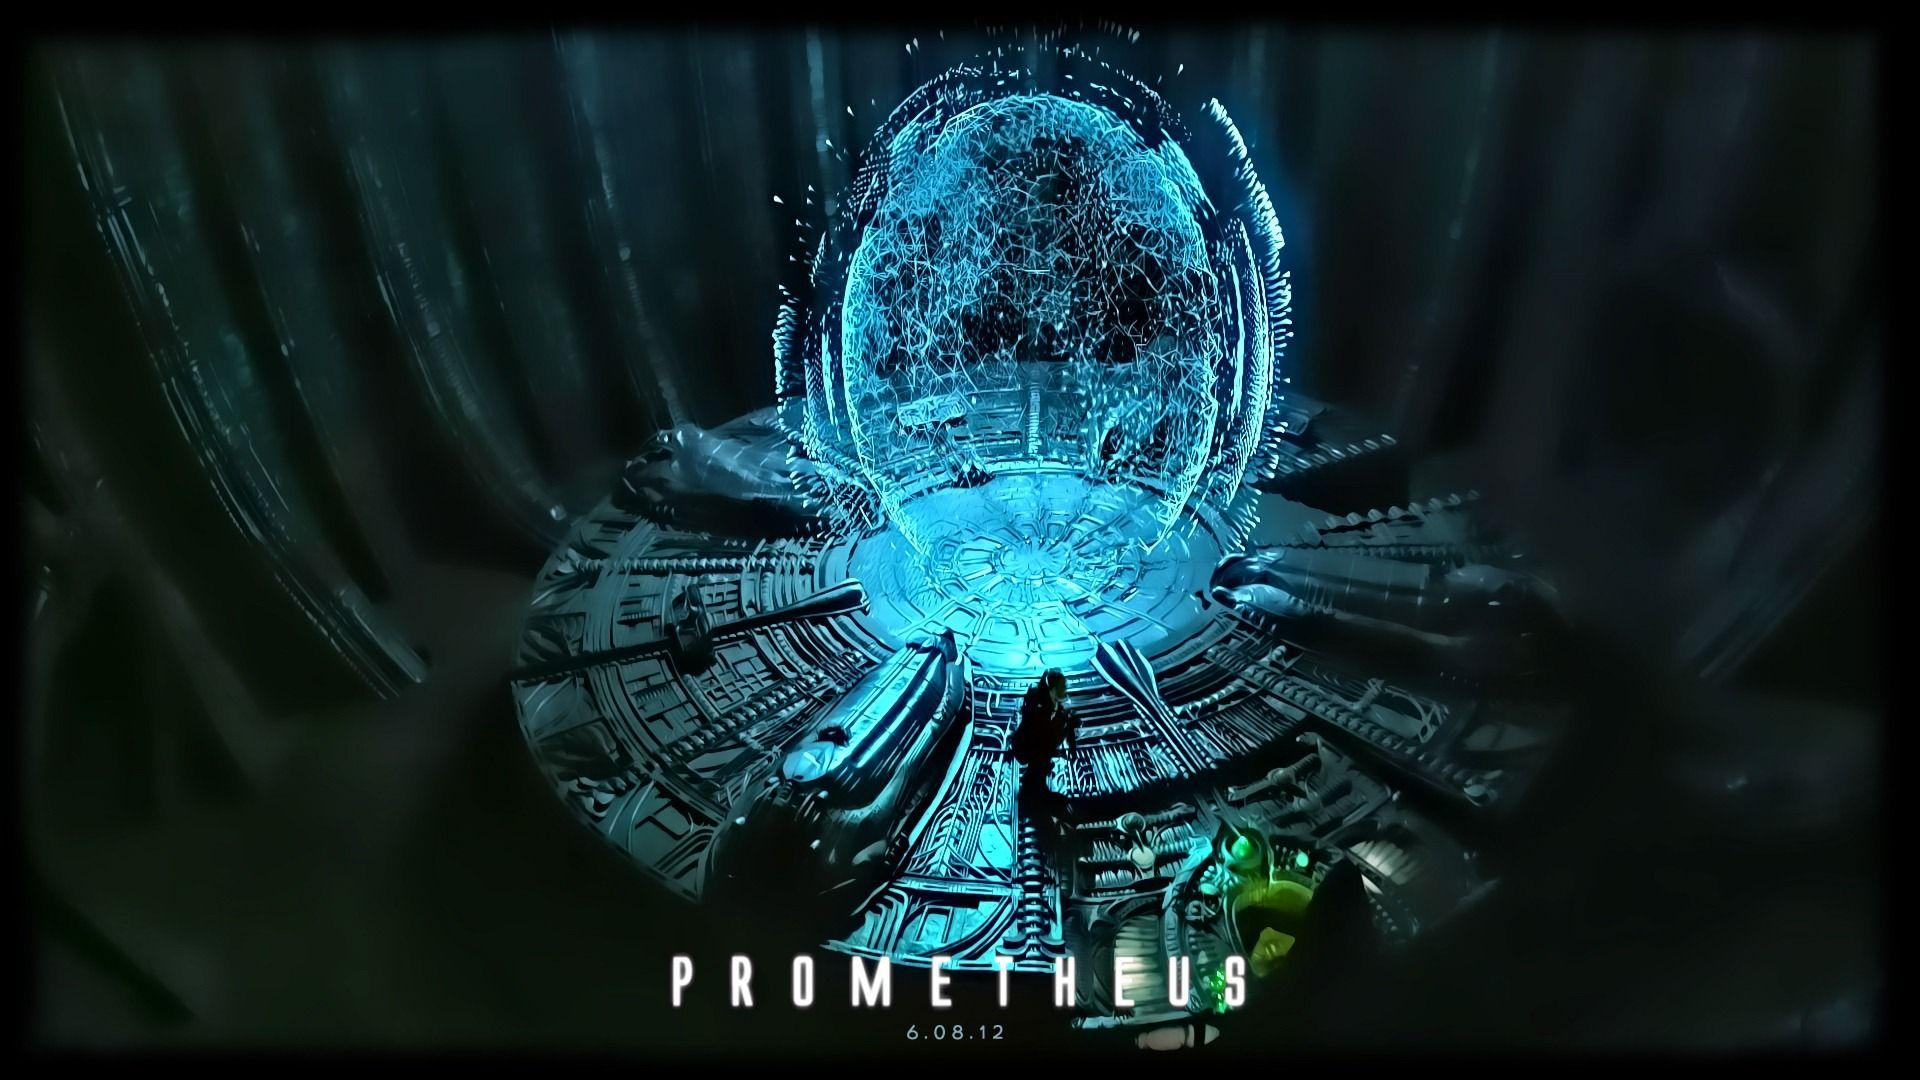 Prometheus-Wallpaper-prometheus-2012-film-33012443-1920-1080